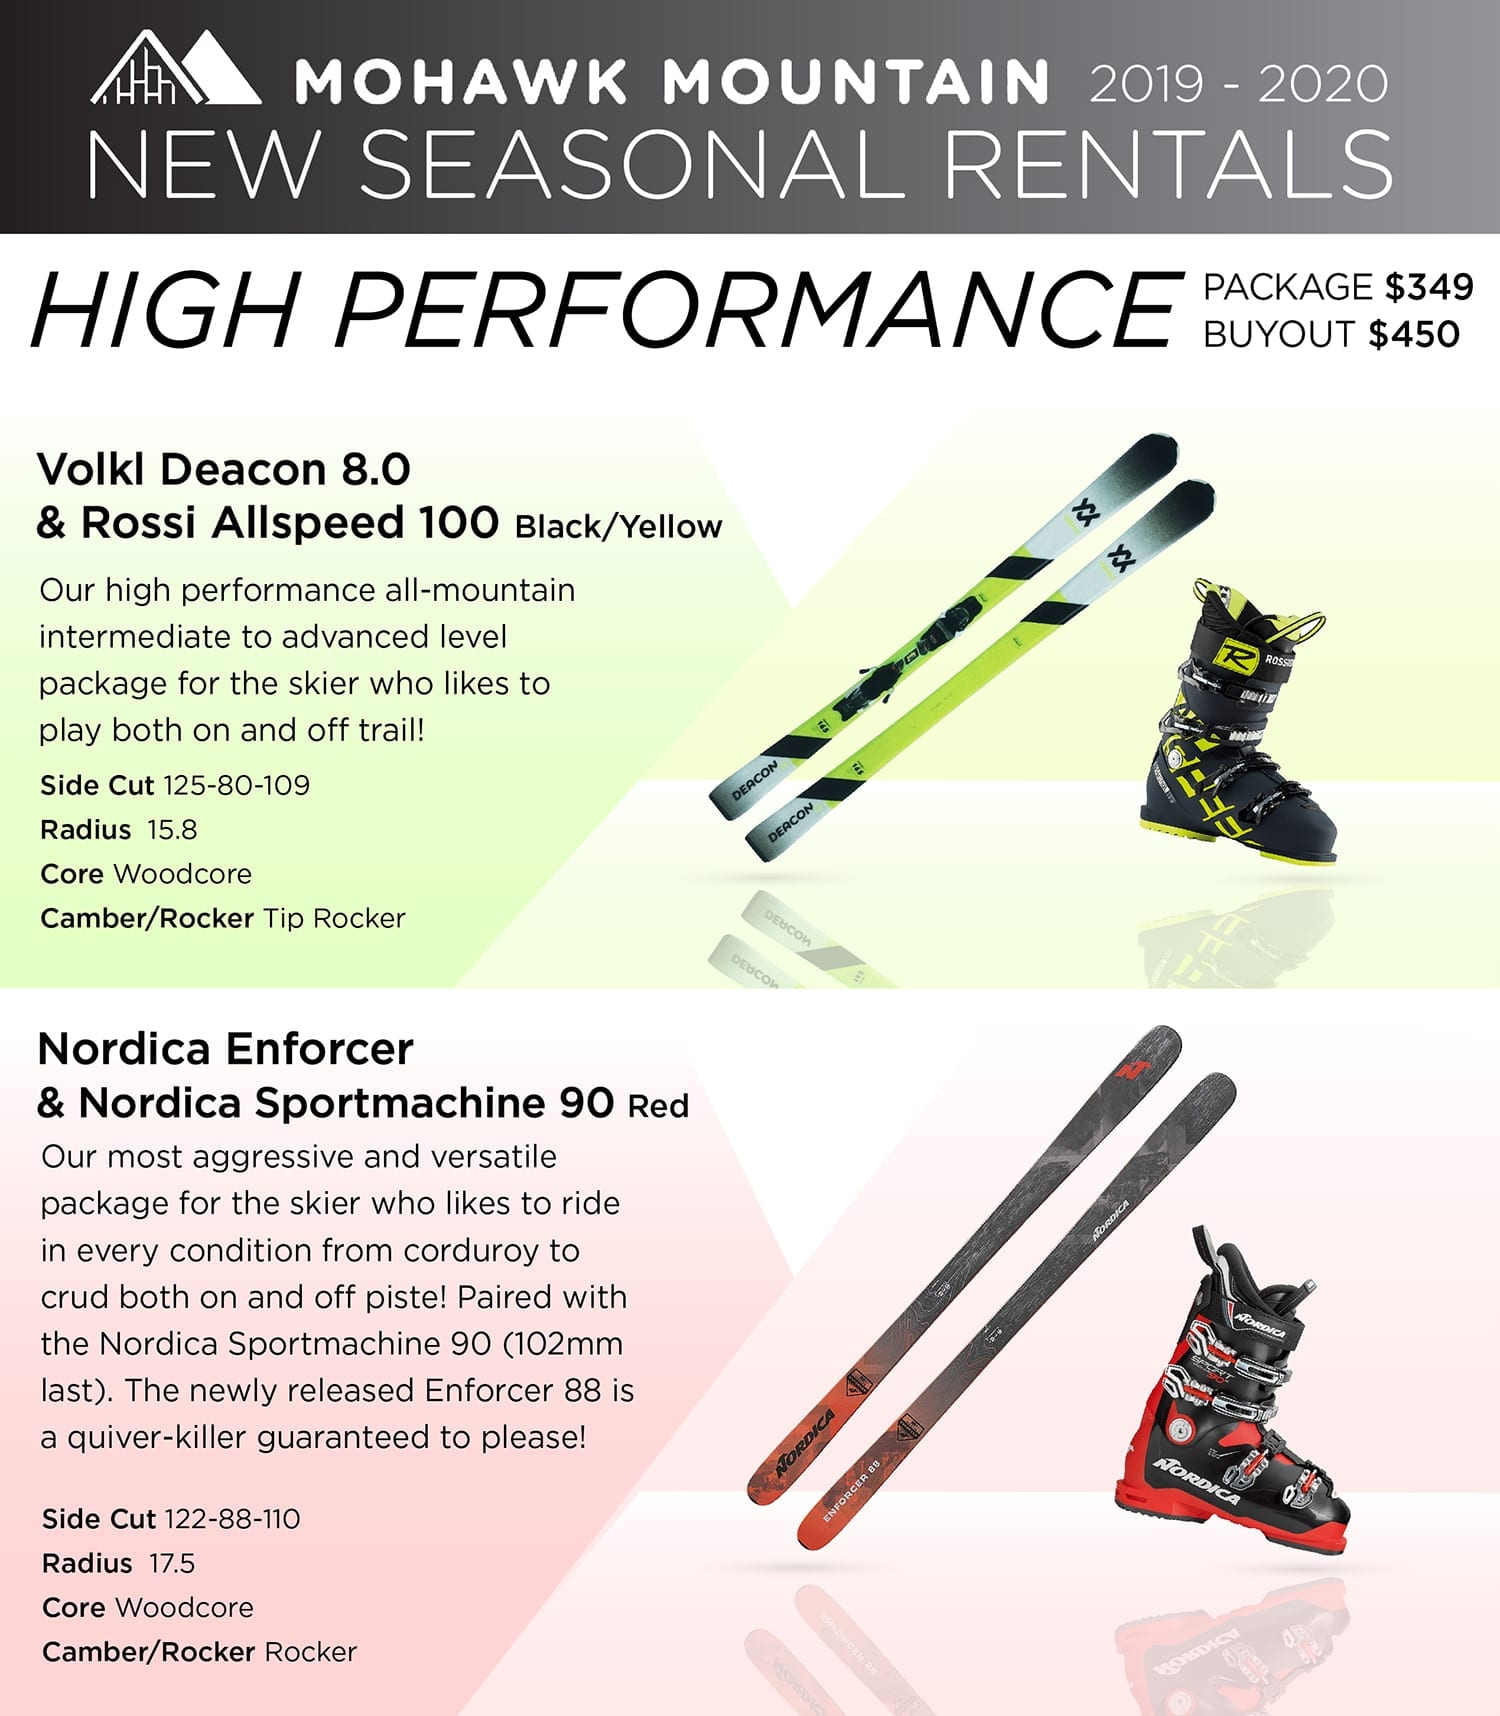 Rental Poster_High Performance